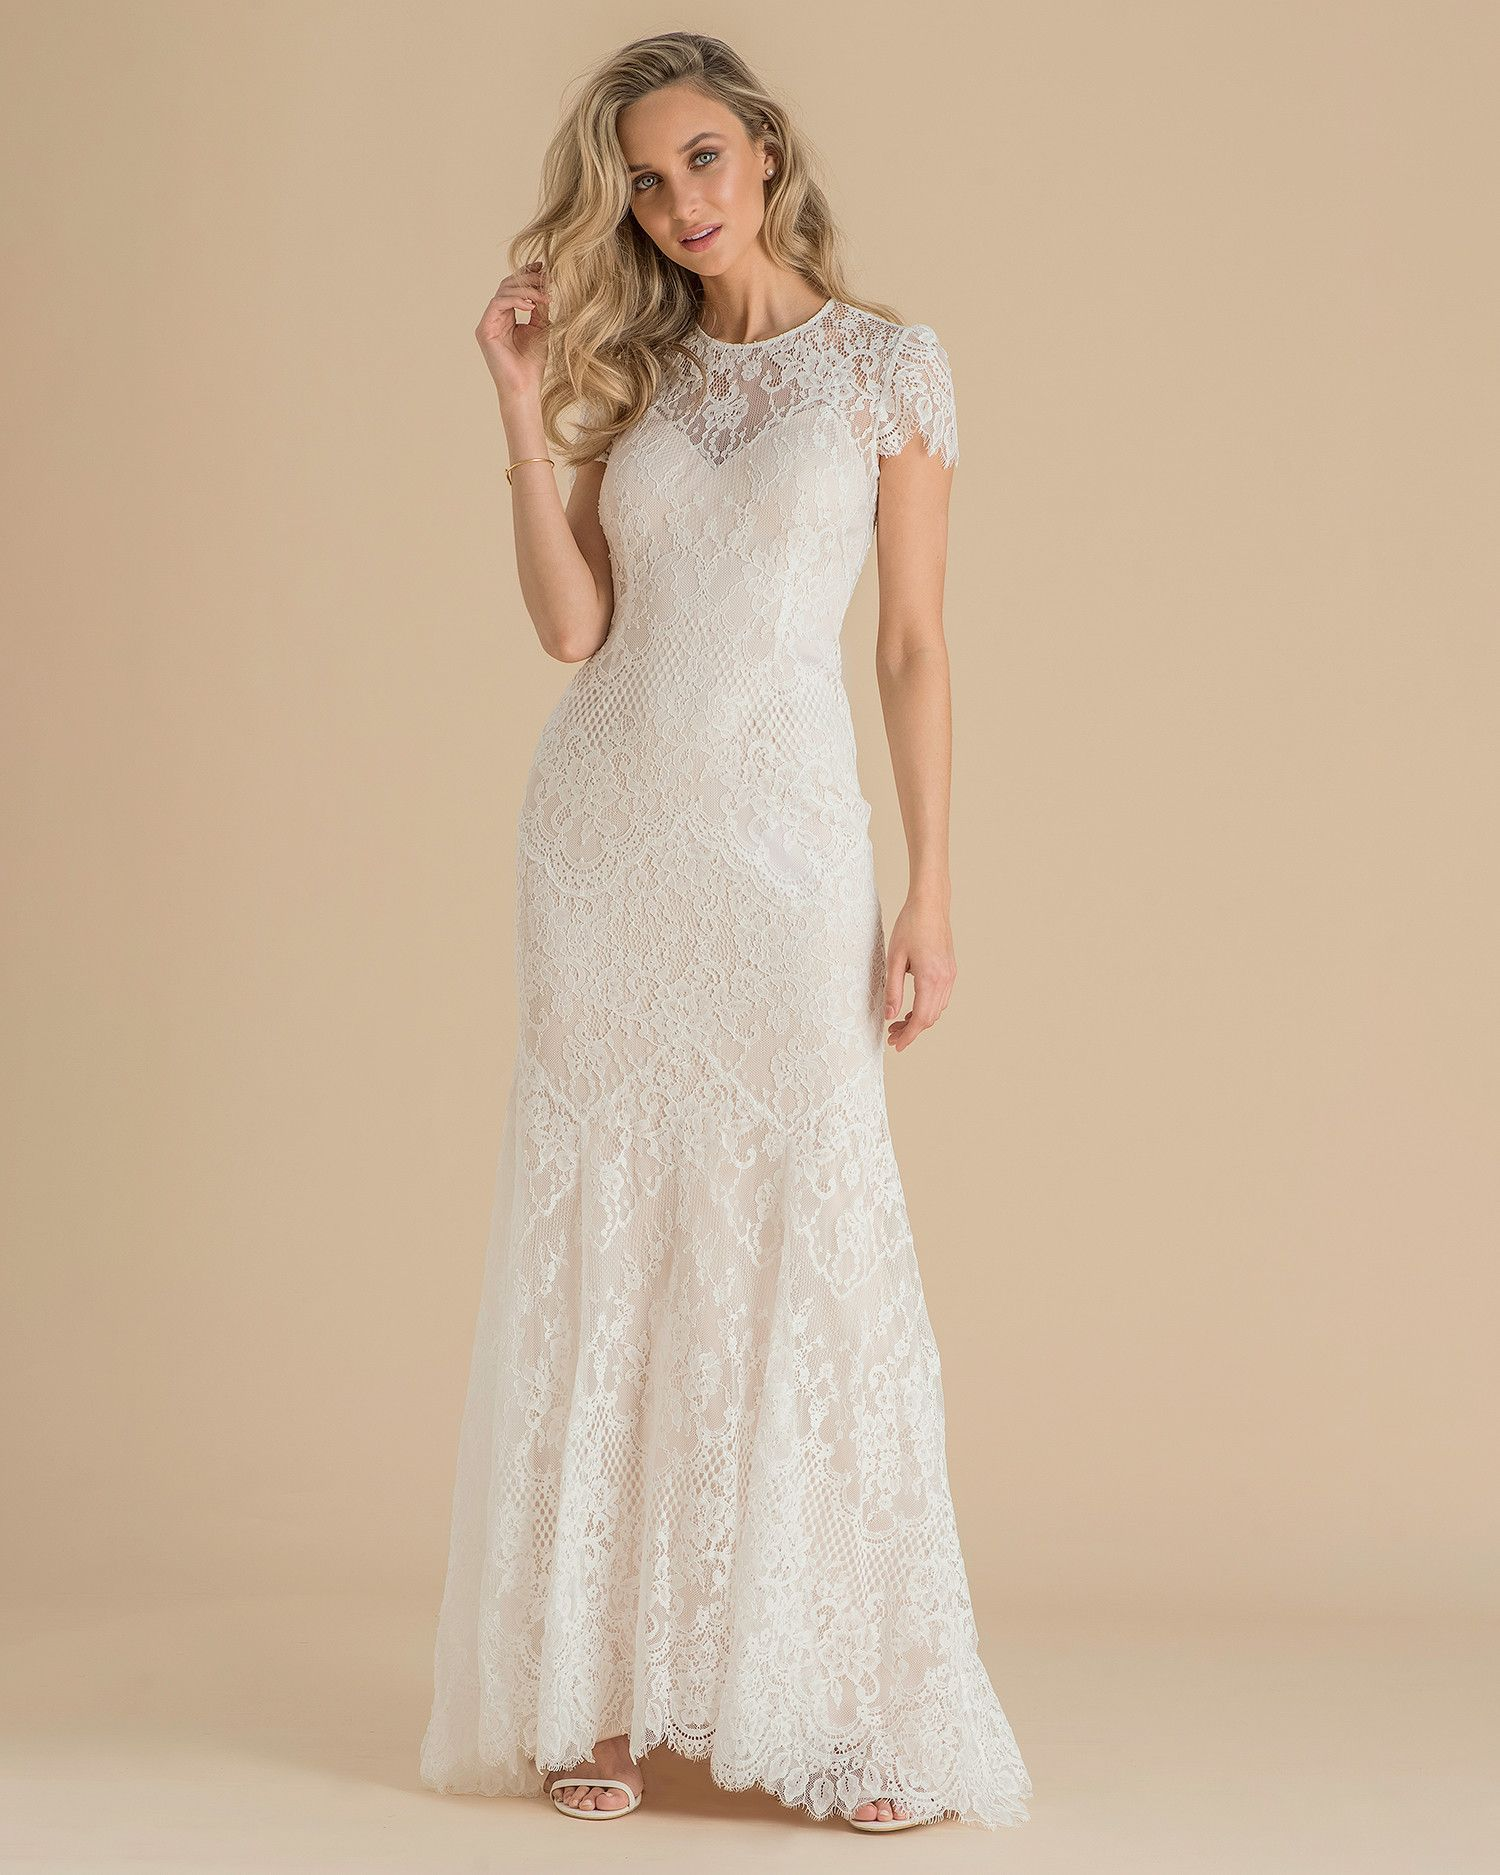 300de0946948 Catherine Deane Spring 2019 Wedding Dress Collection | Wedding Dress ...